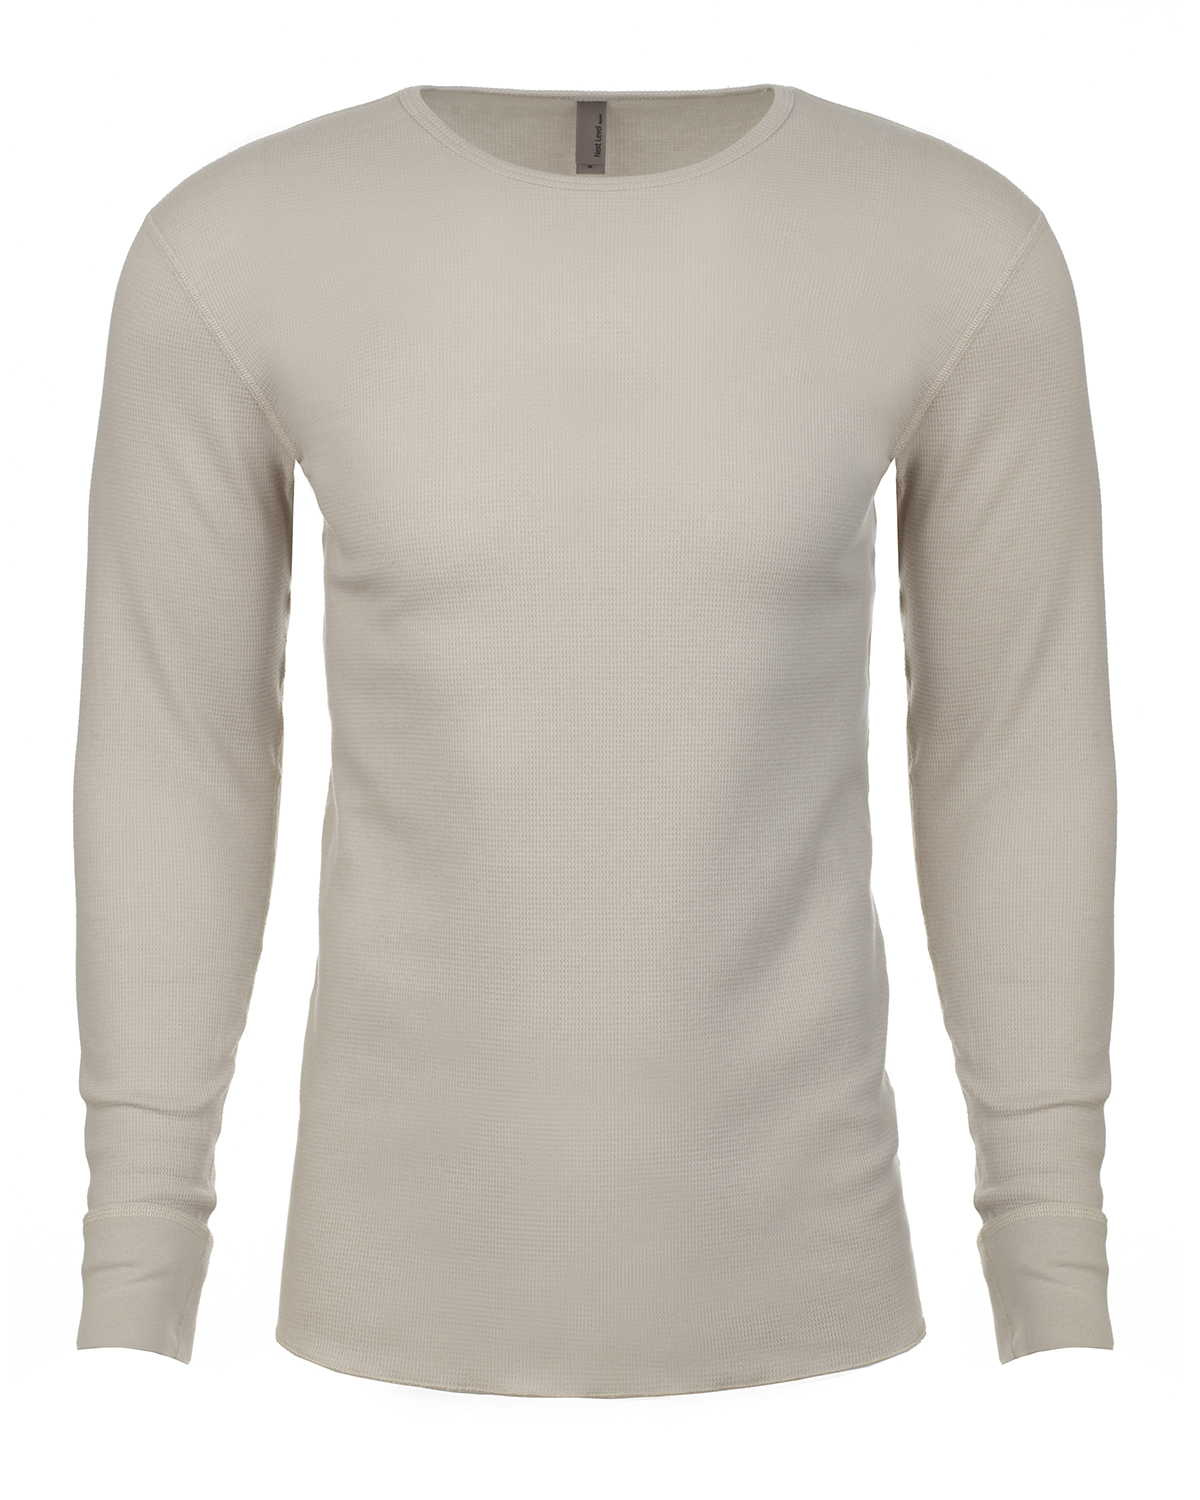 Next Level Apparel 8201 - Unisex Long Sleeve Thermal